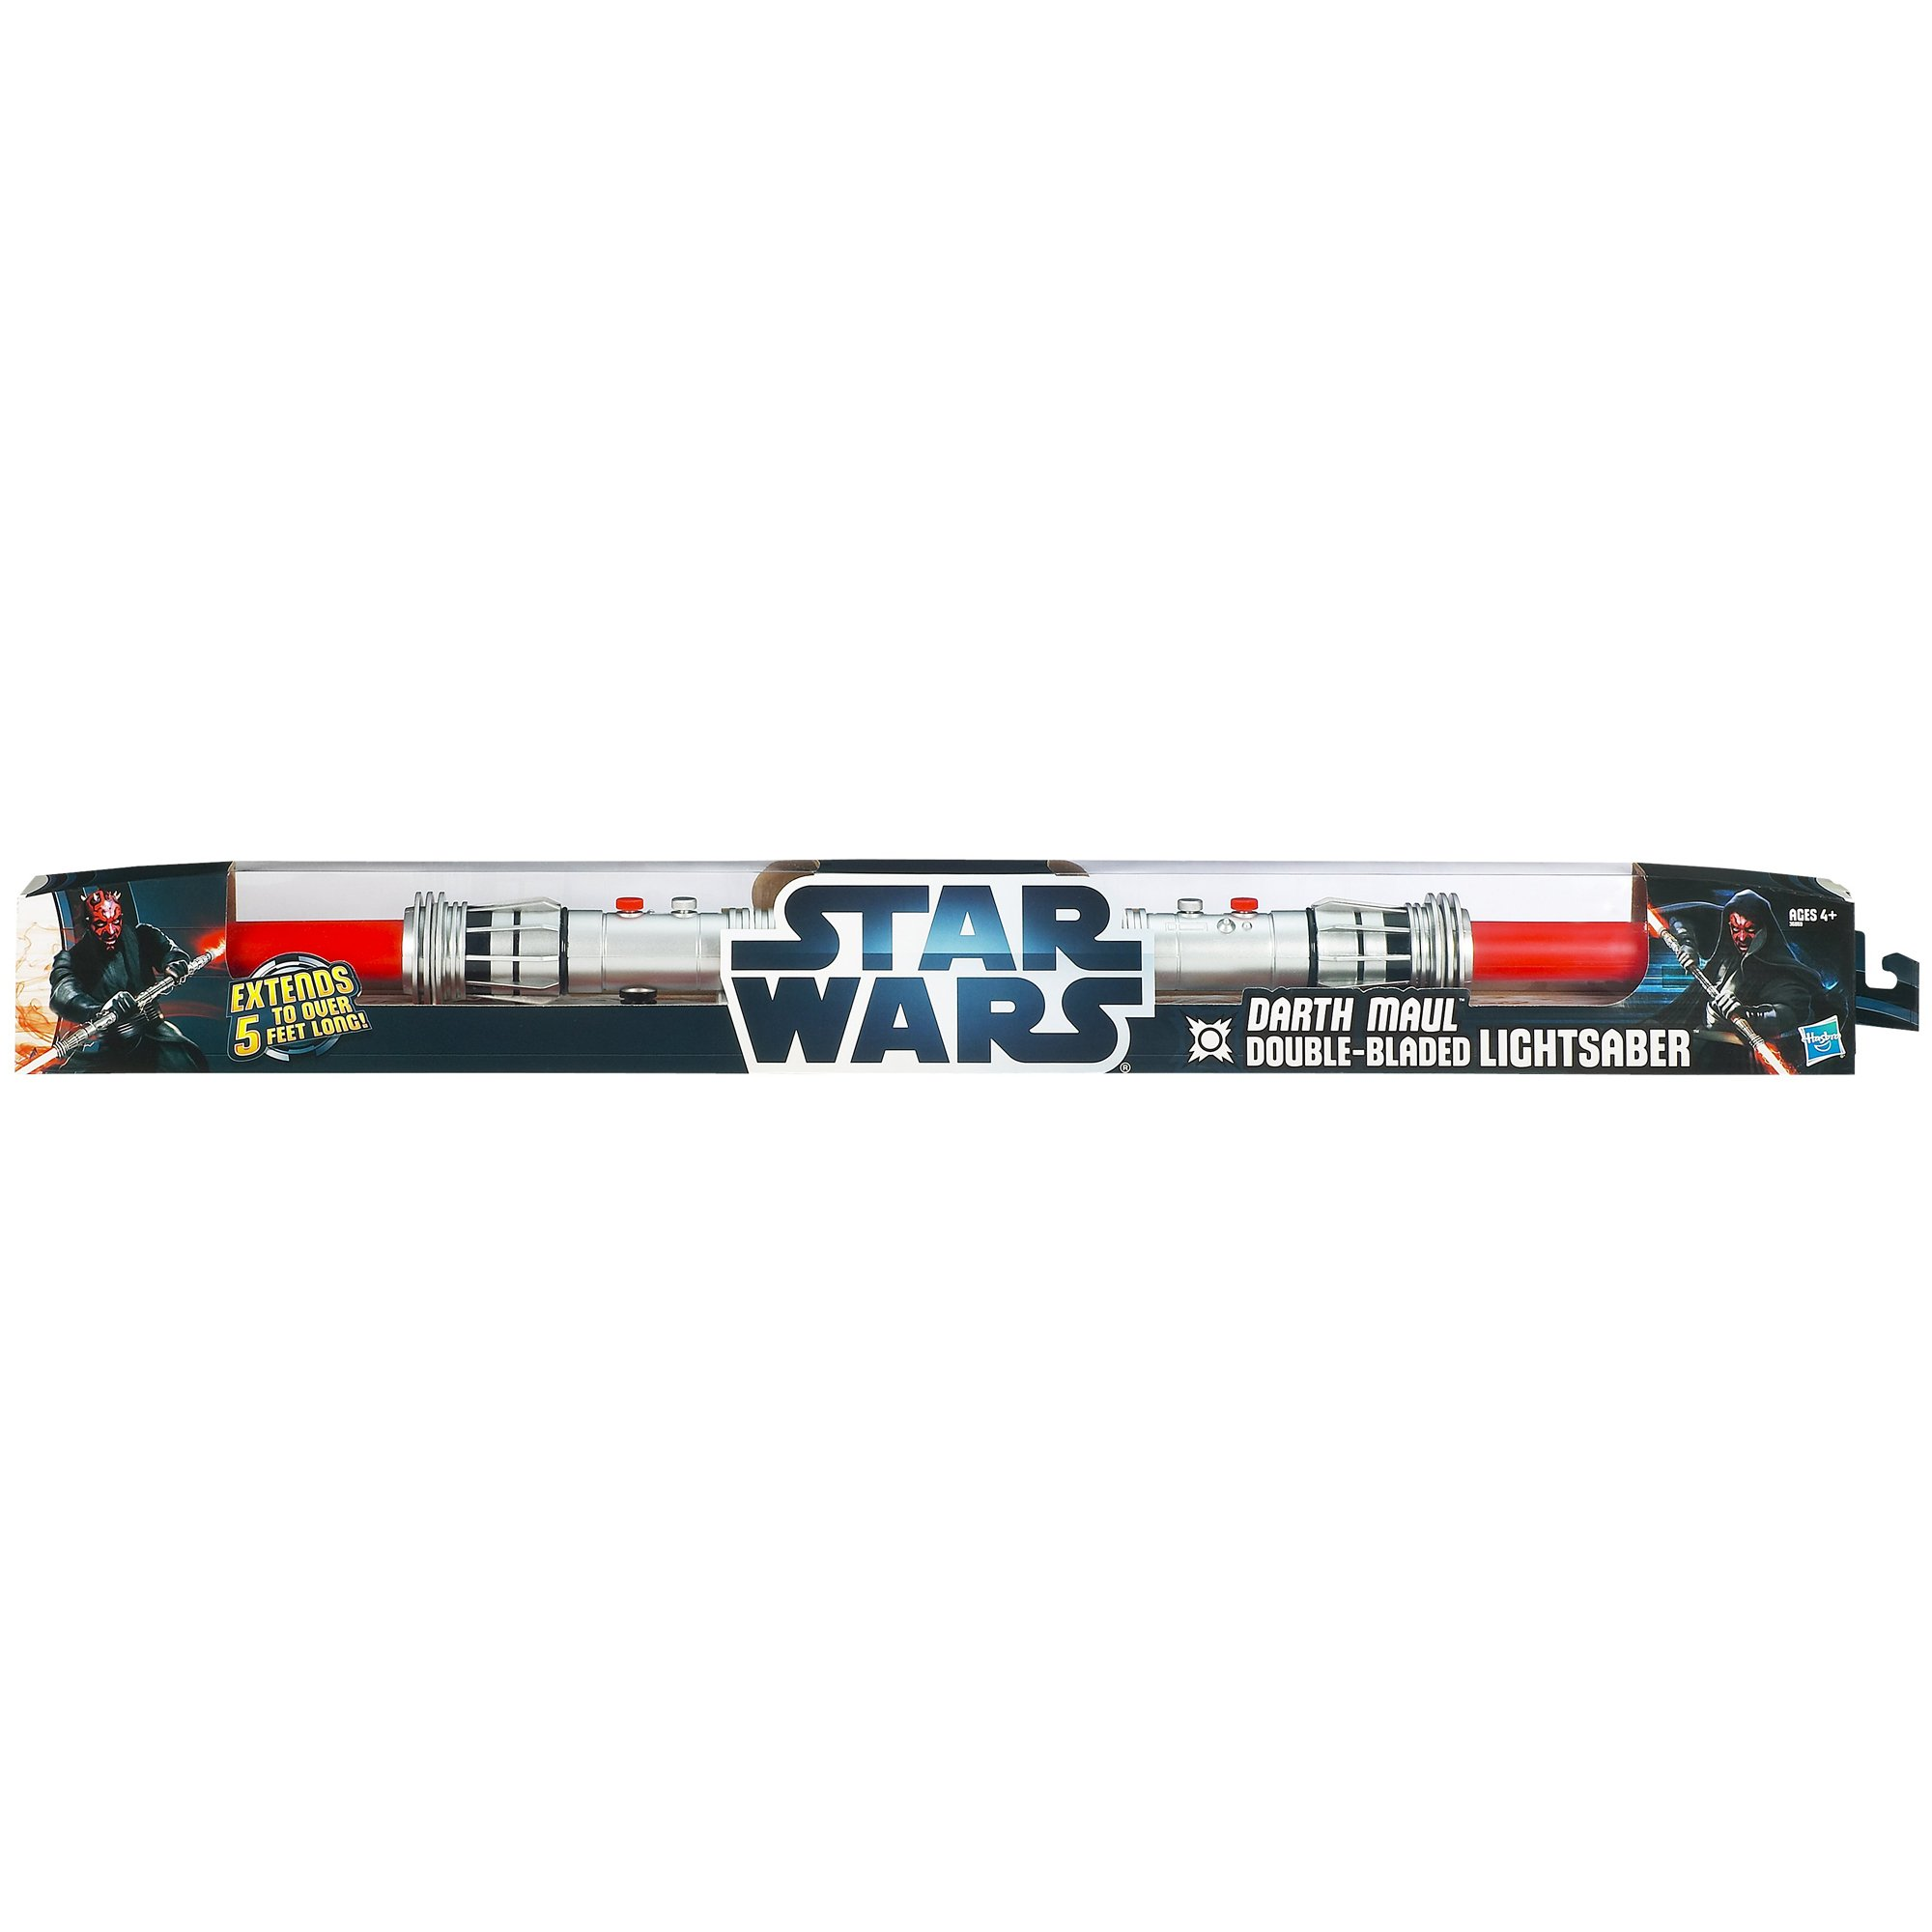 Star Wars Darth Maul Double-Bladed Lightsaber Toy by Star Wars (Image #2)